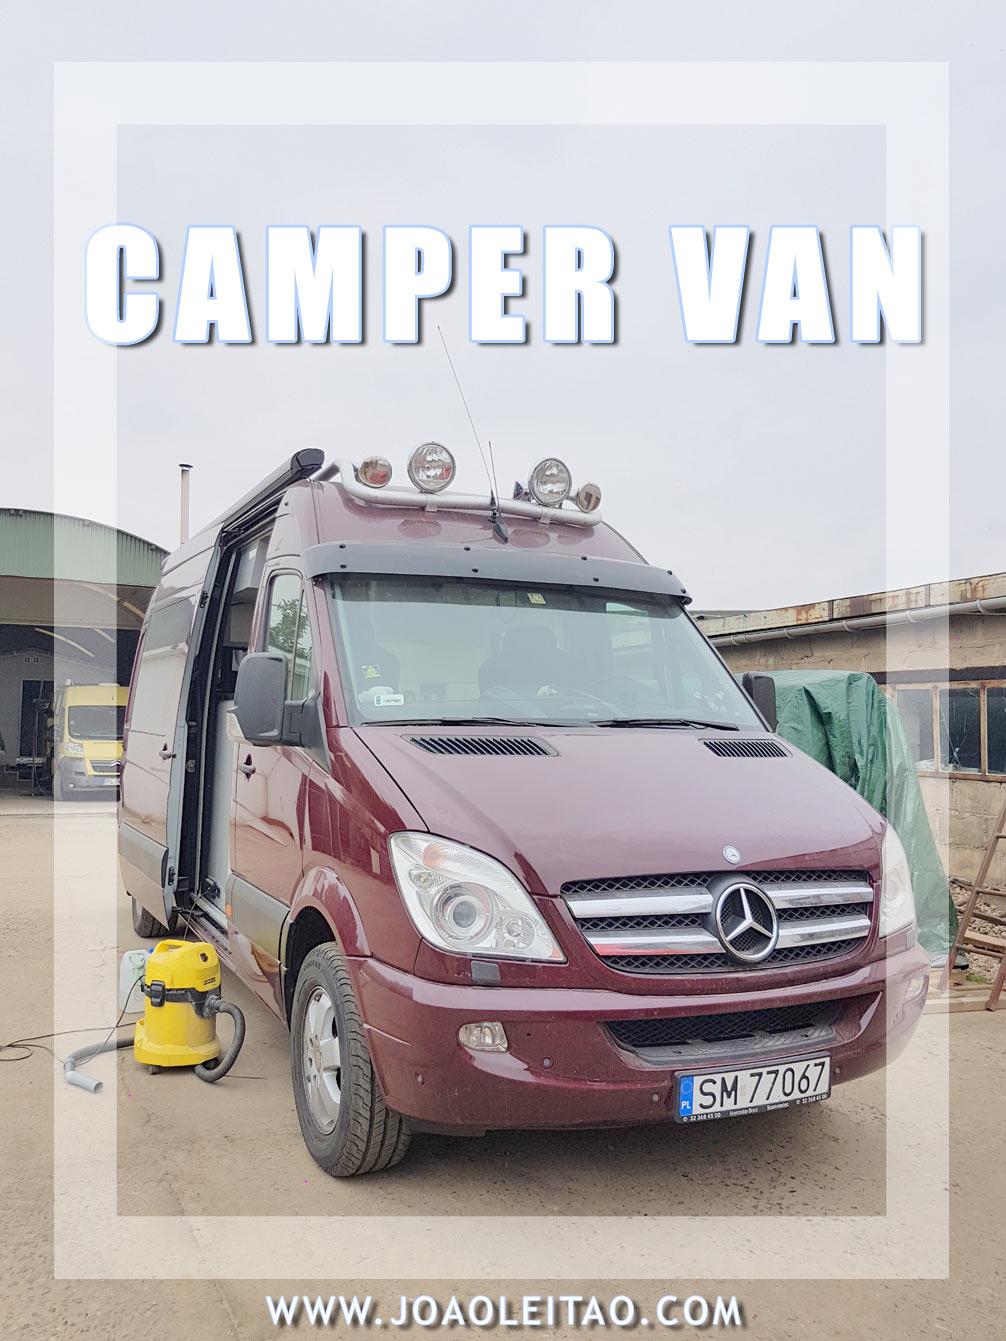 How to choose and buy a 4X4 camper van - Options, ideas & advice